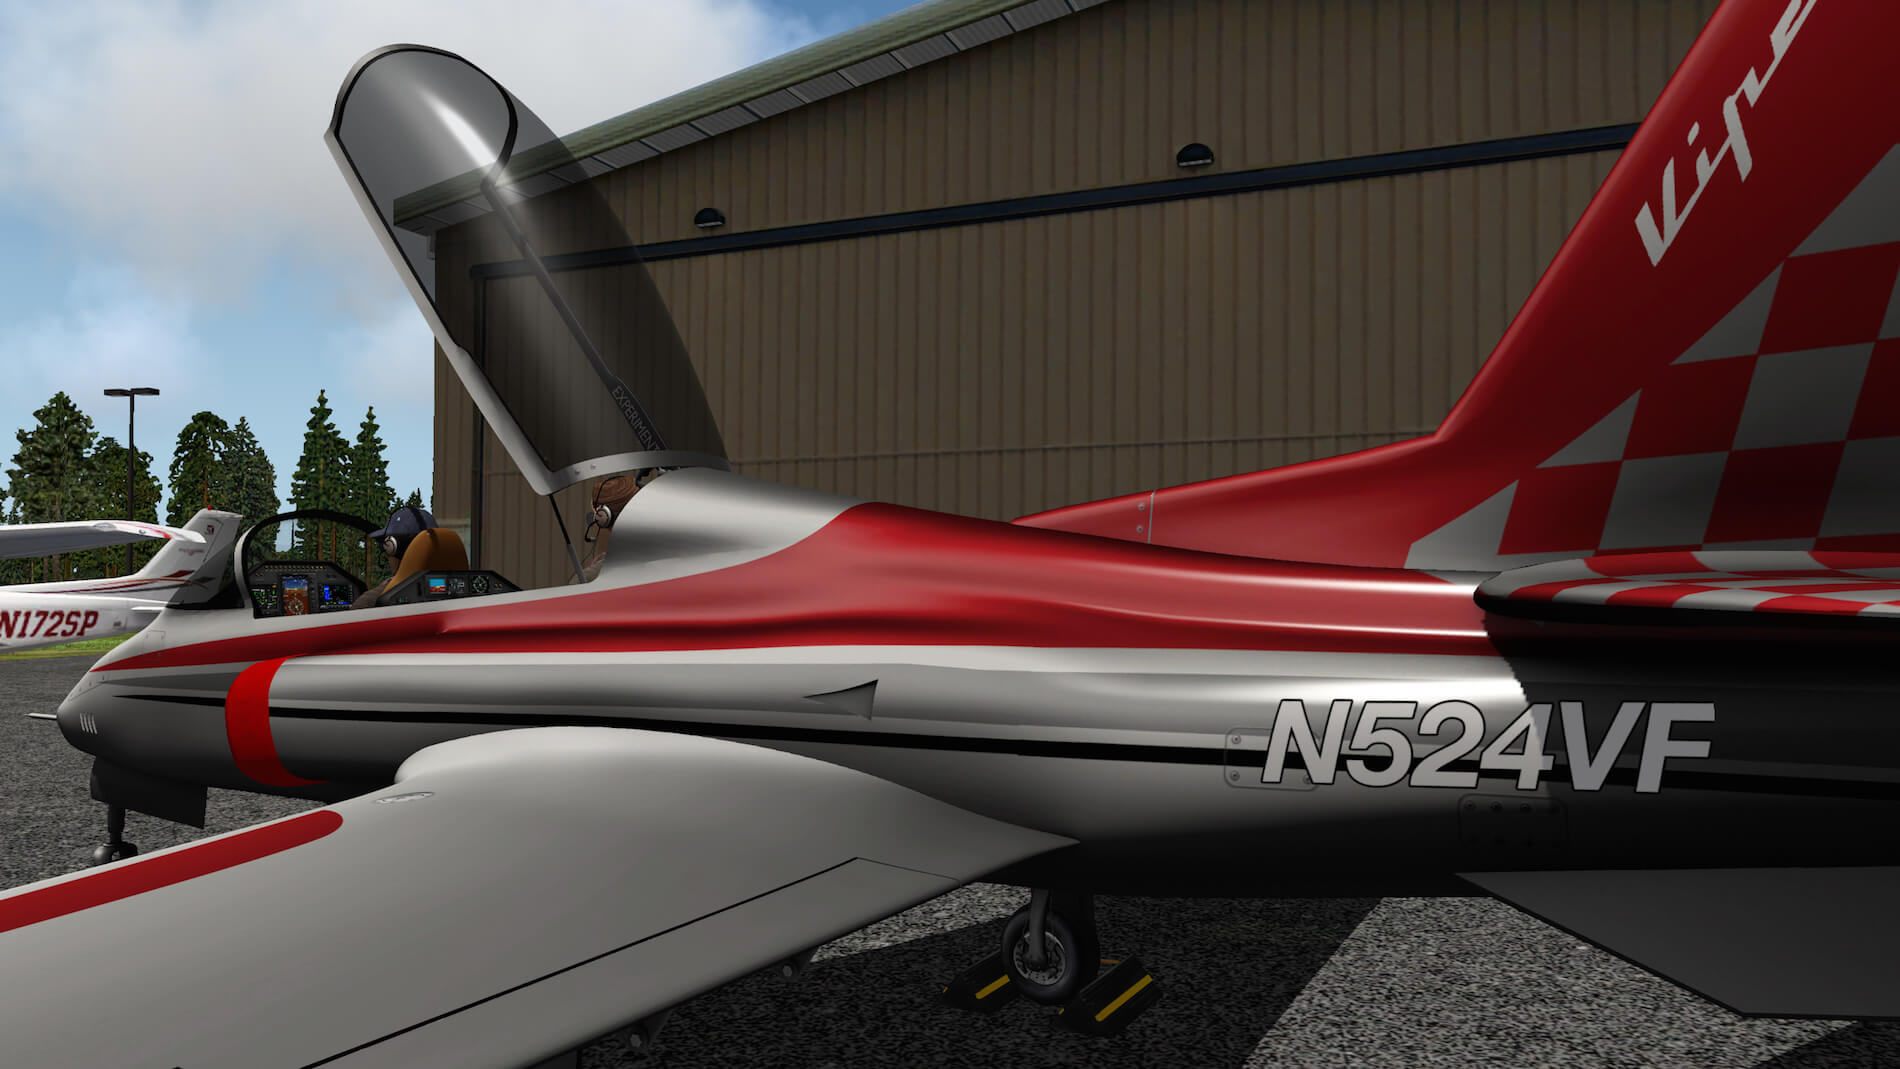 2016 Viper Aircraft Corp Viperjet Mk Ii Specs - The Best and Latest